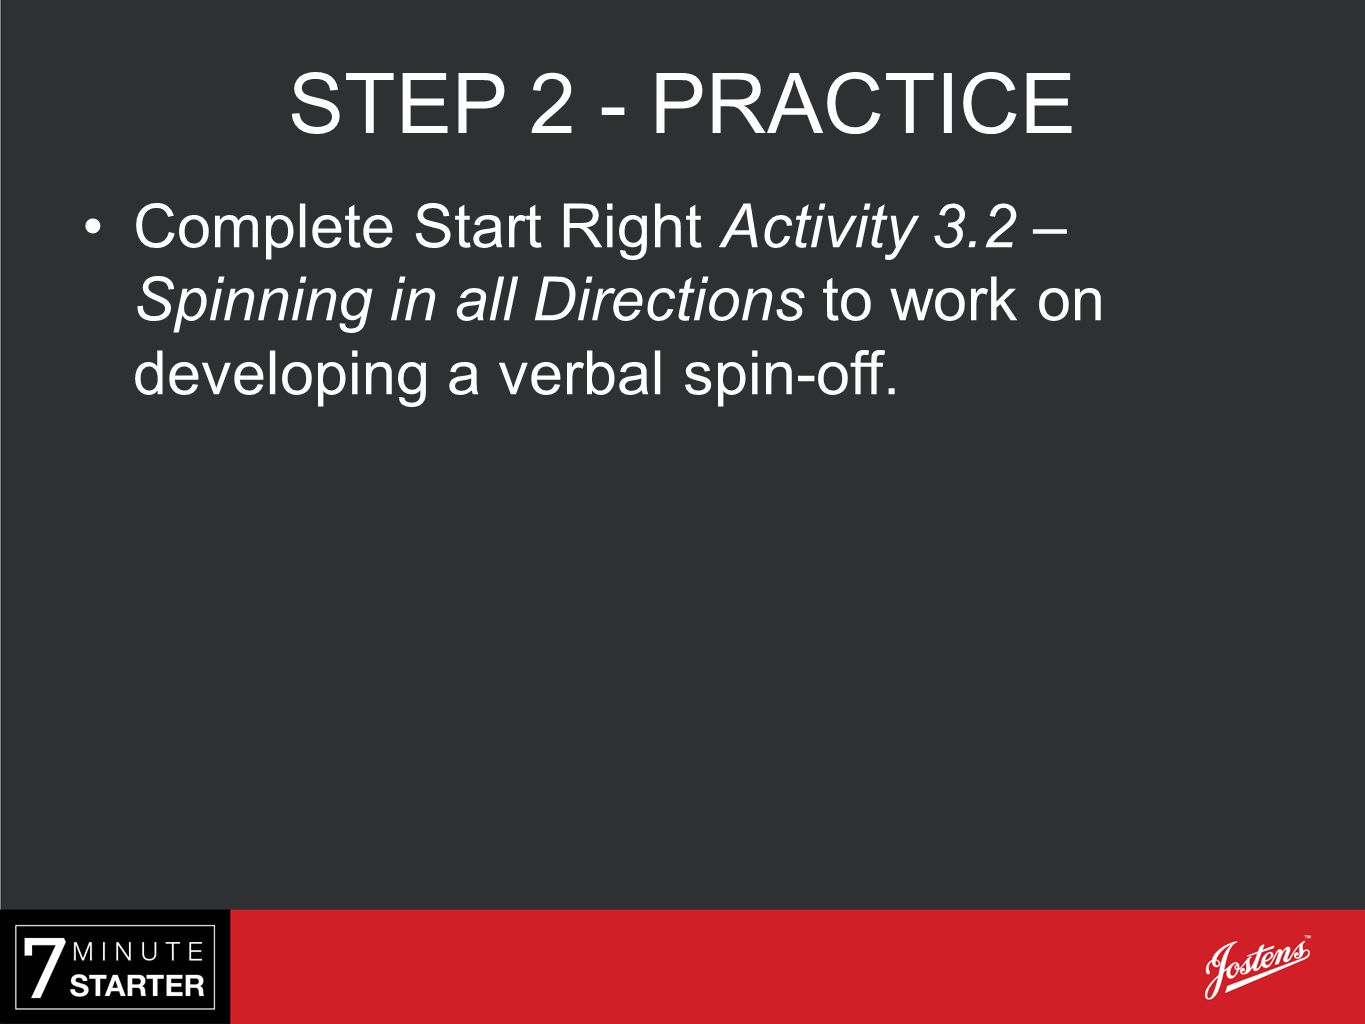 STEP 2 - PRACTICE Complete Start Right Activity 3.2 – Spinning in all Directions to work on developing a verbal spin-off.